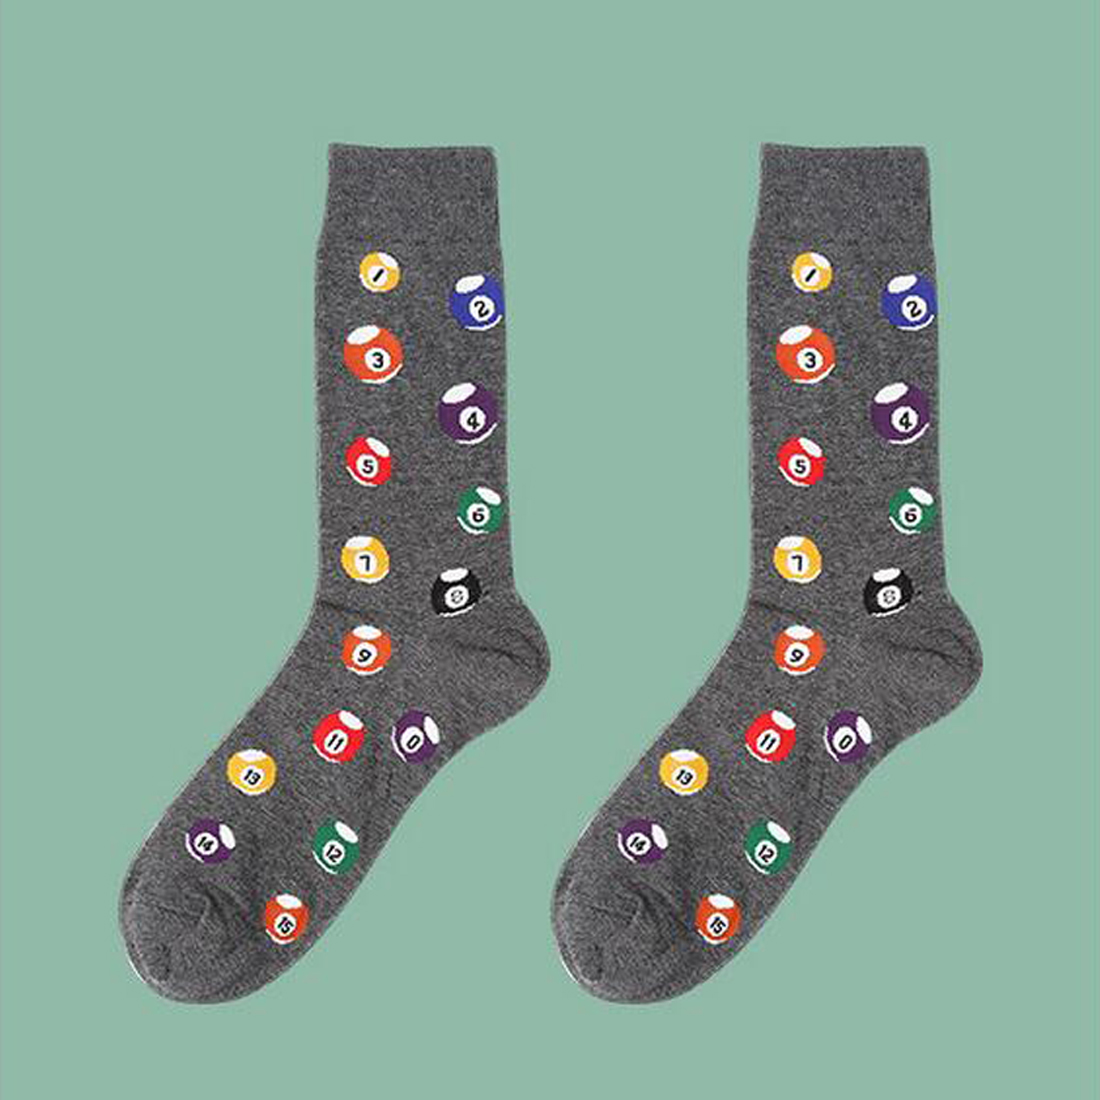 Top Sell 39-44 Socks Brand Women Mens Novelty Socks Combed Cotton Christmas Gift Chausettes Homme Animal Puzzle Design Socks